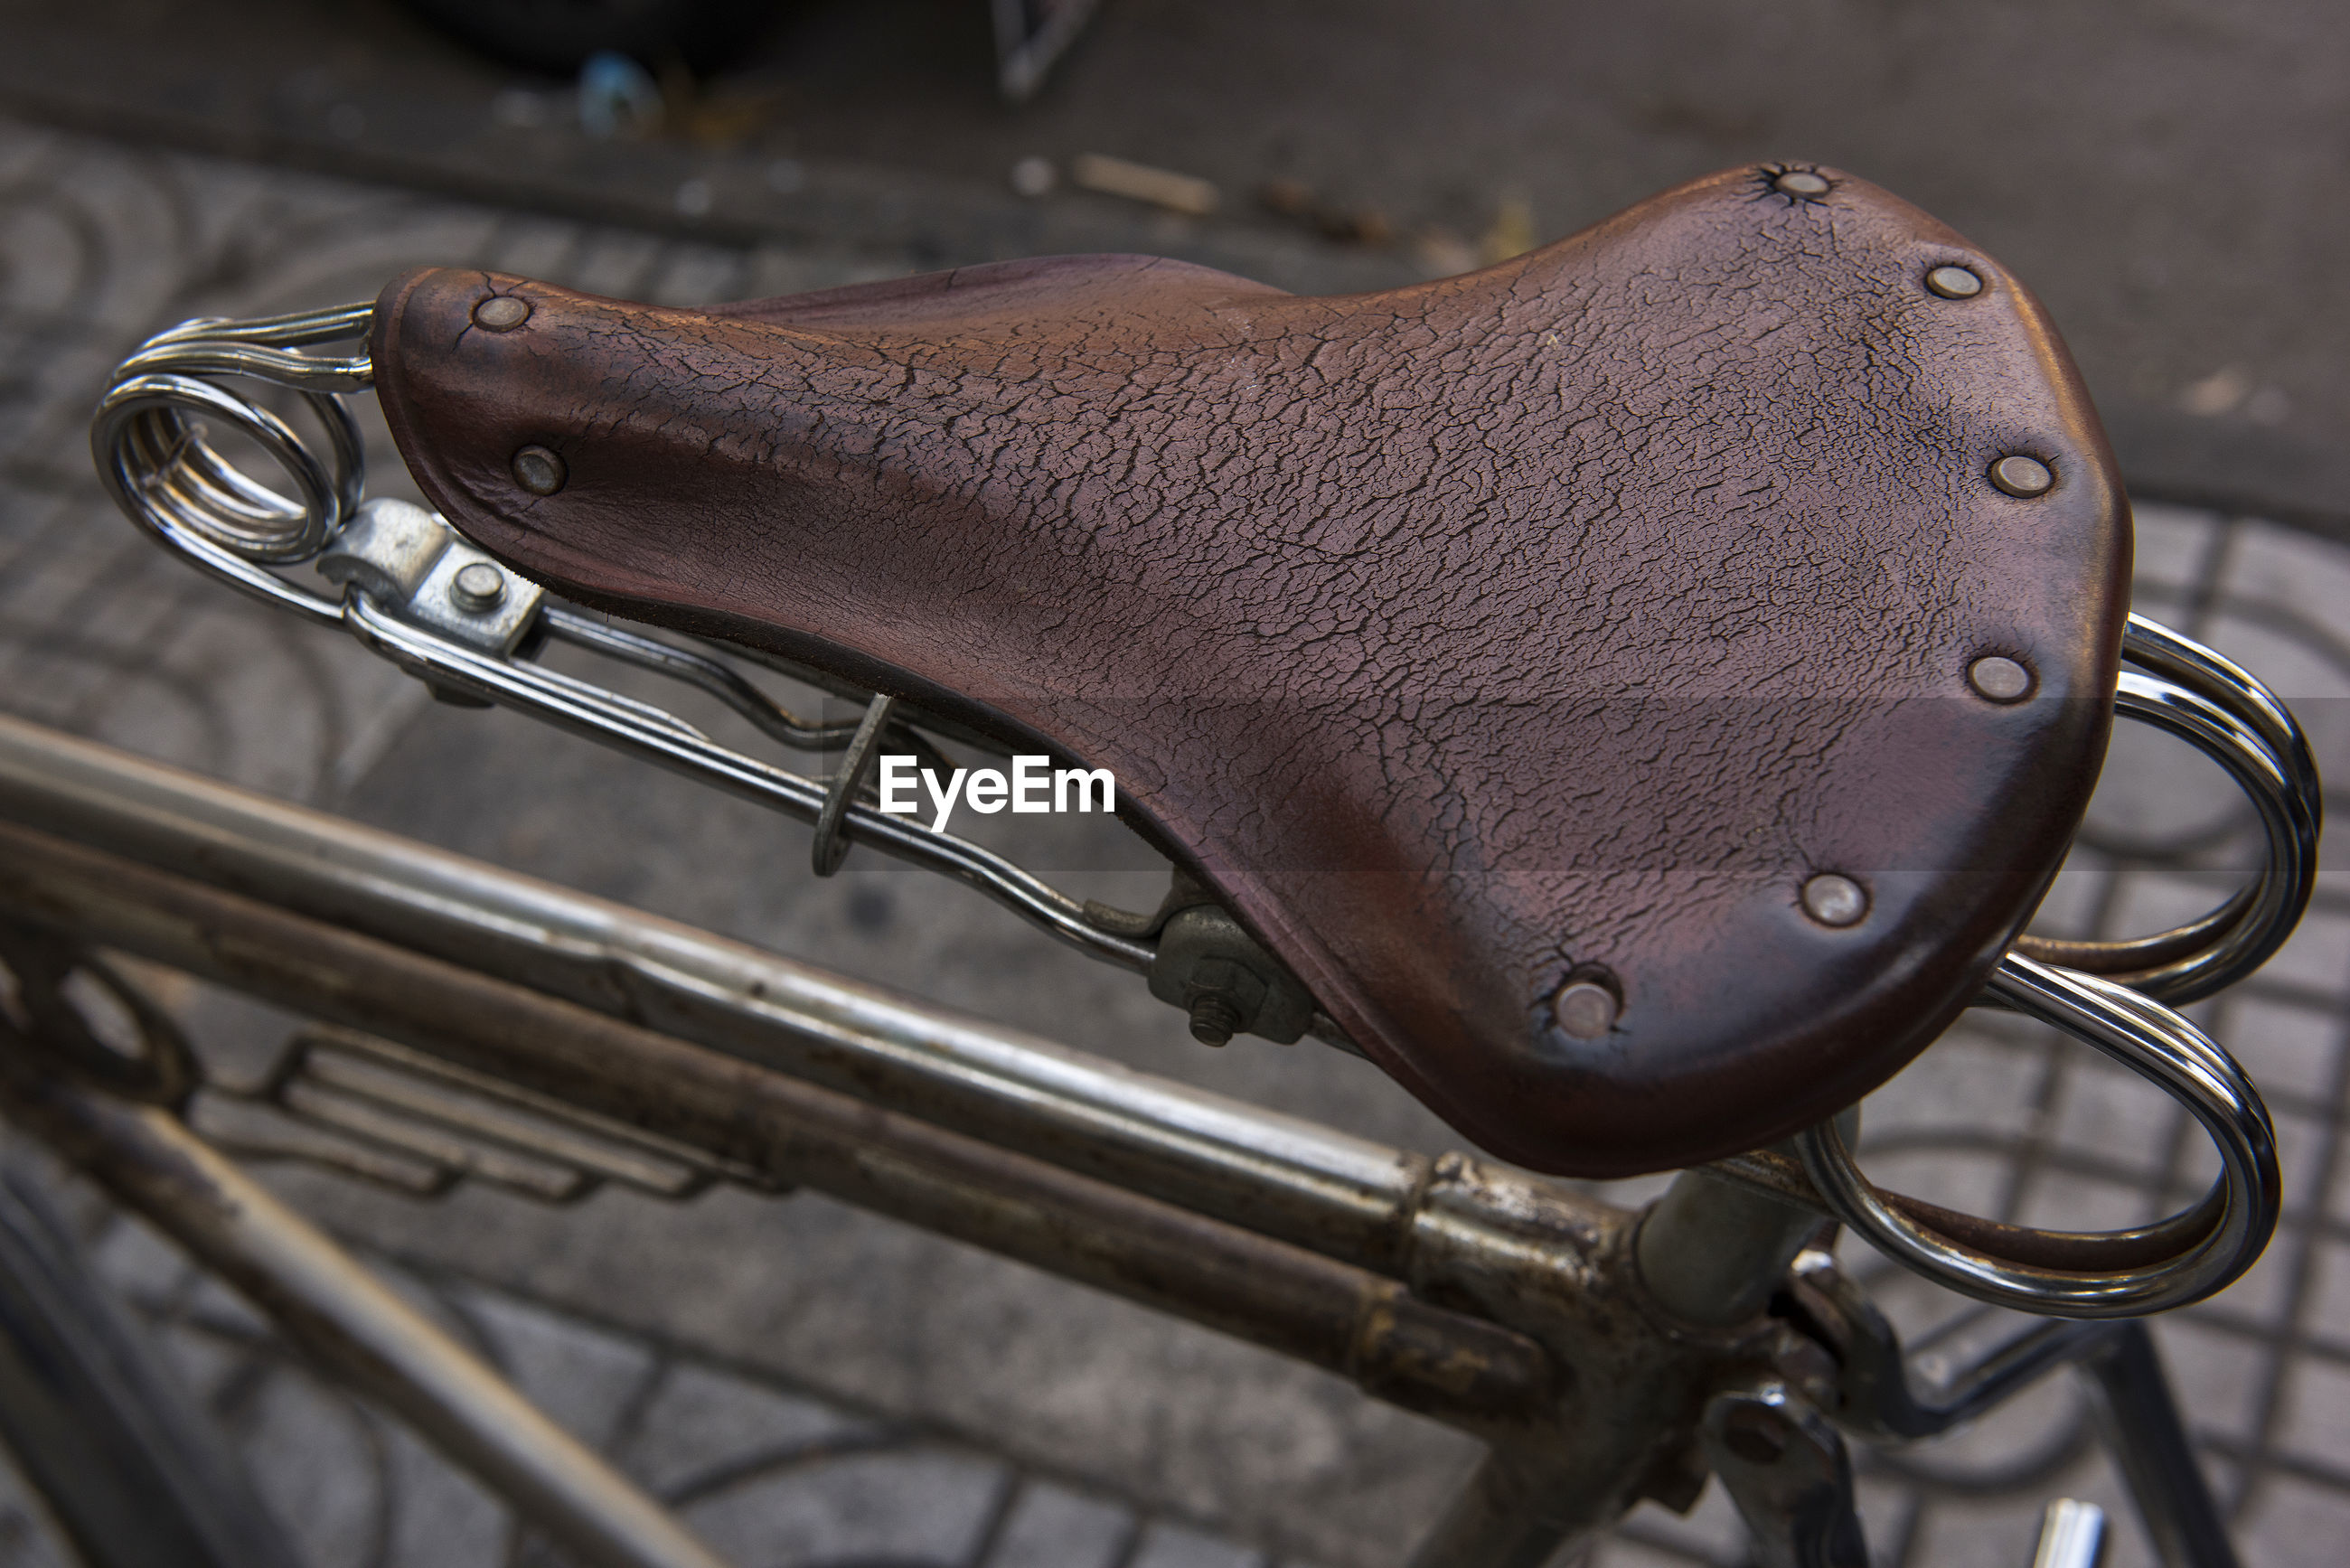 Close-up of bicycle seat